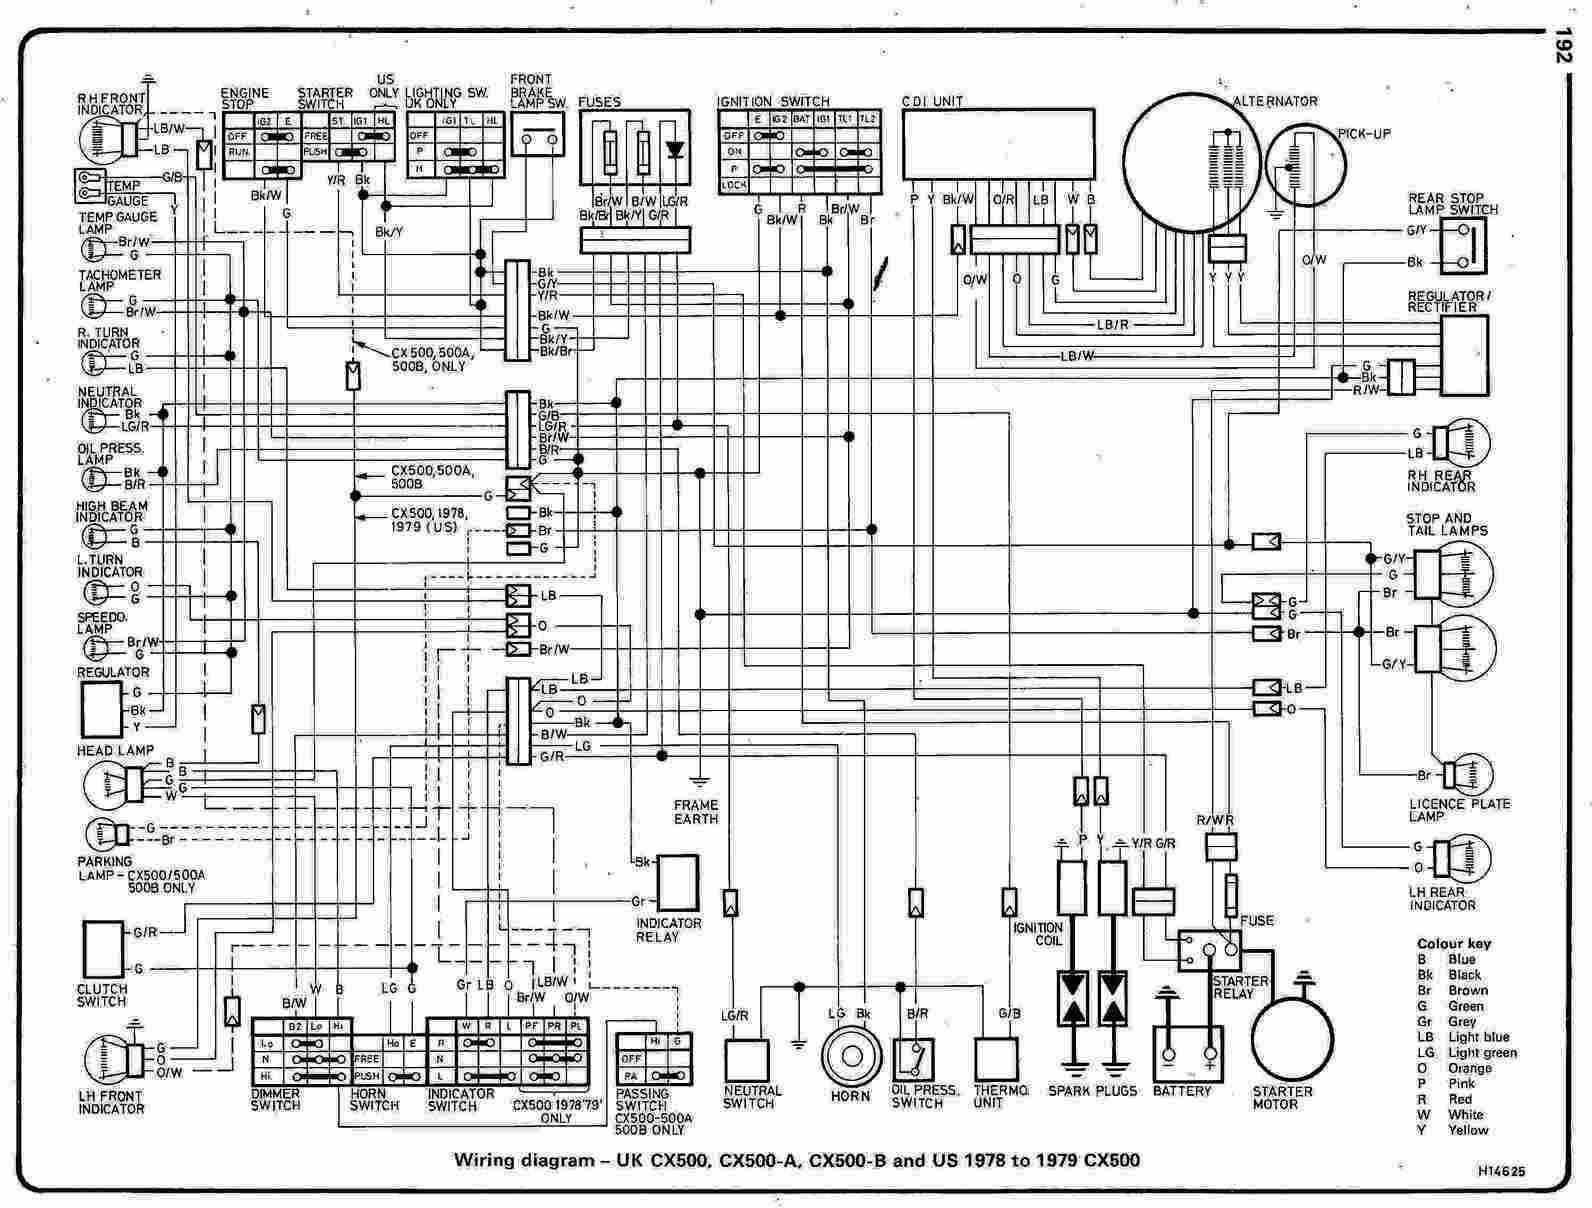 CX500 wiring diagram (general) | Honda cx500, Honda, Diagramwww.pinterest.ph